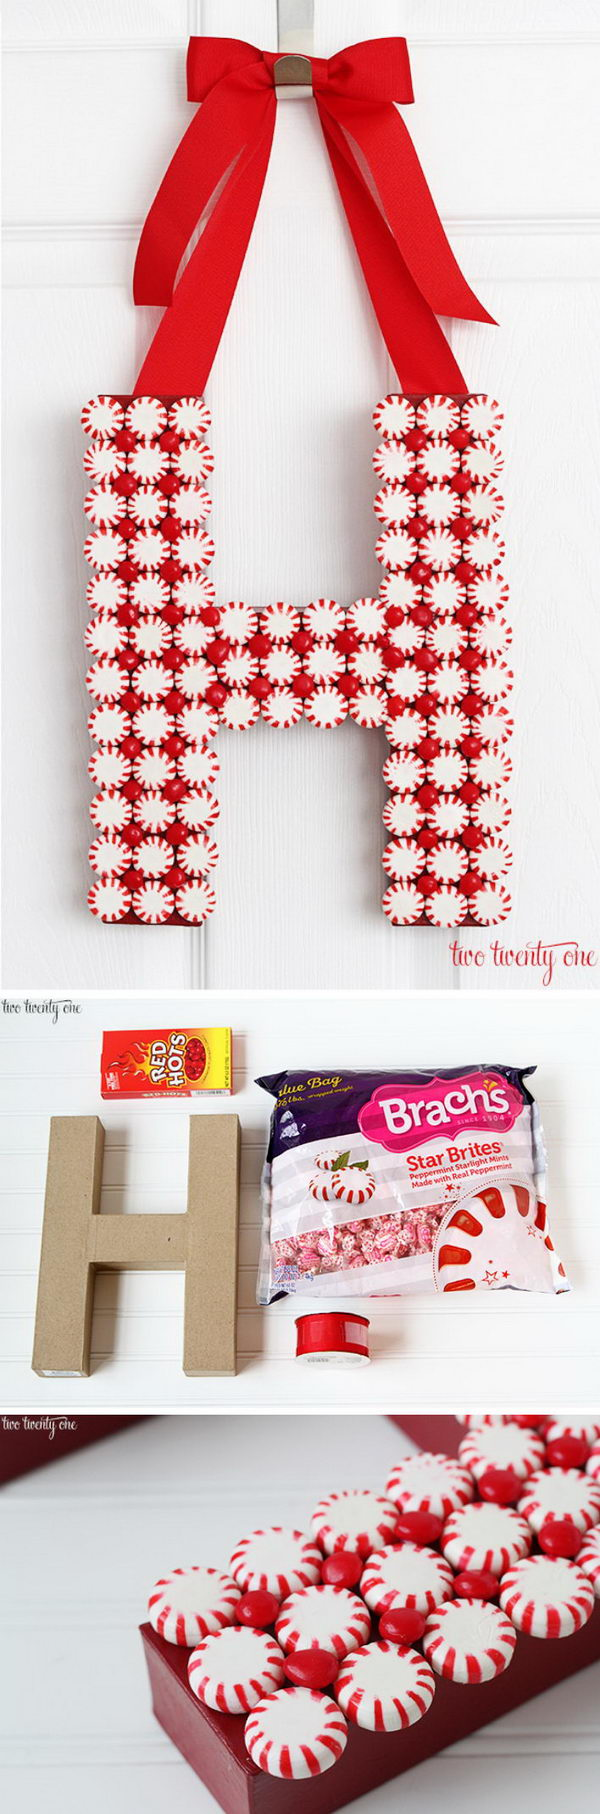 DIY Peppermint Monogram Wreath.